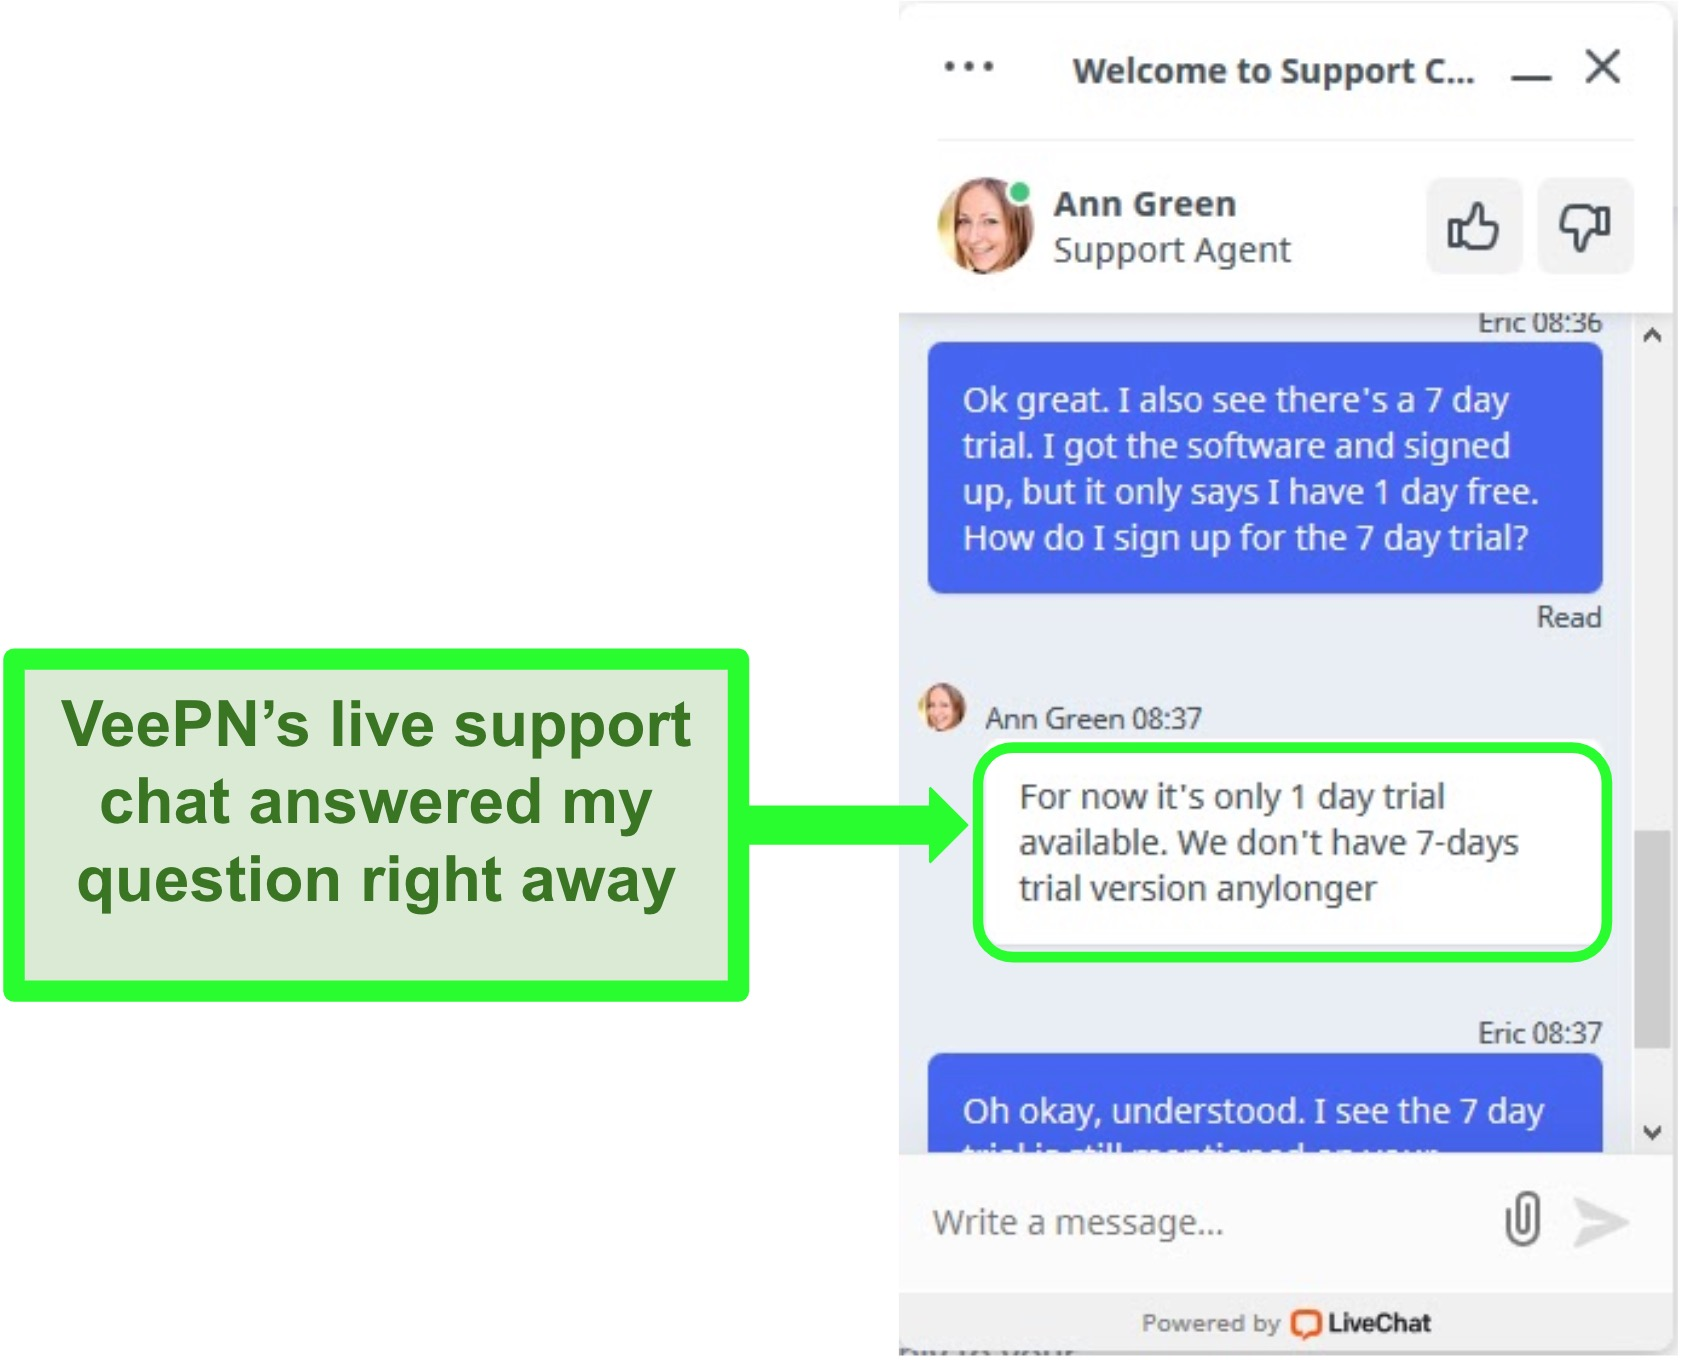 Screenshot of VeePN's live support chat answering a question about the free trial